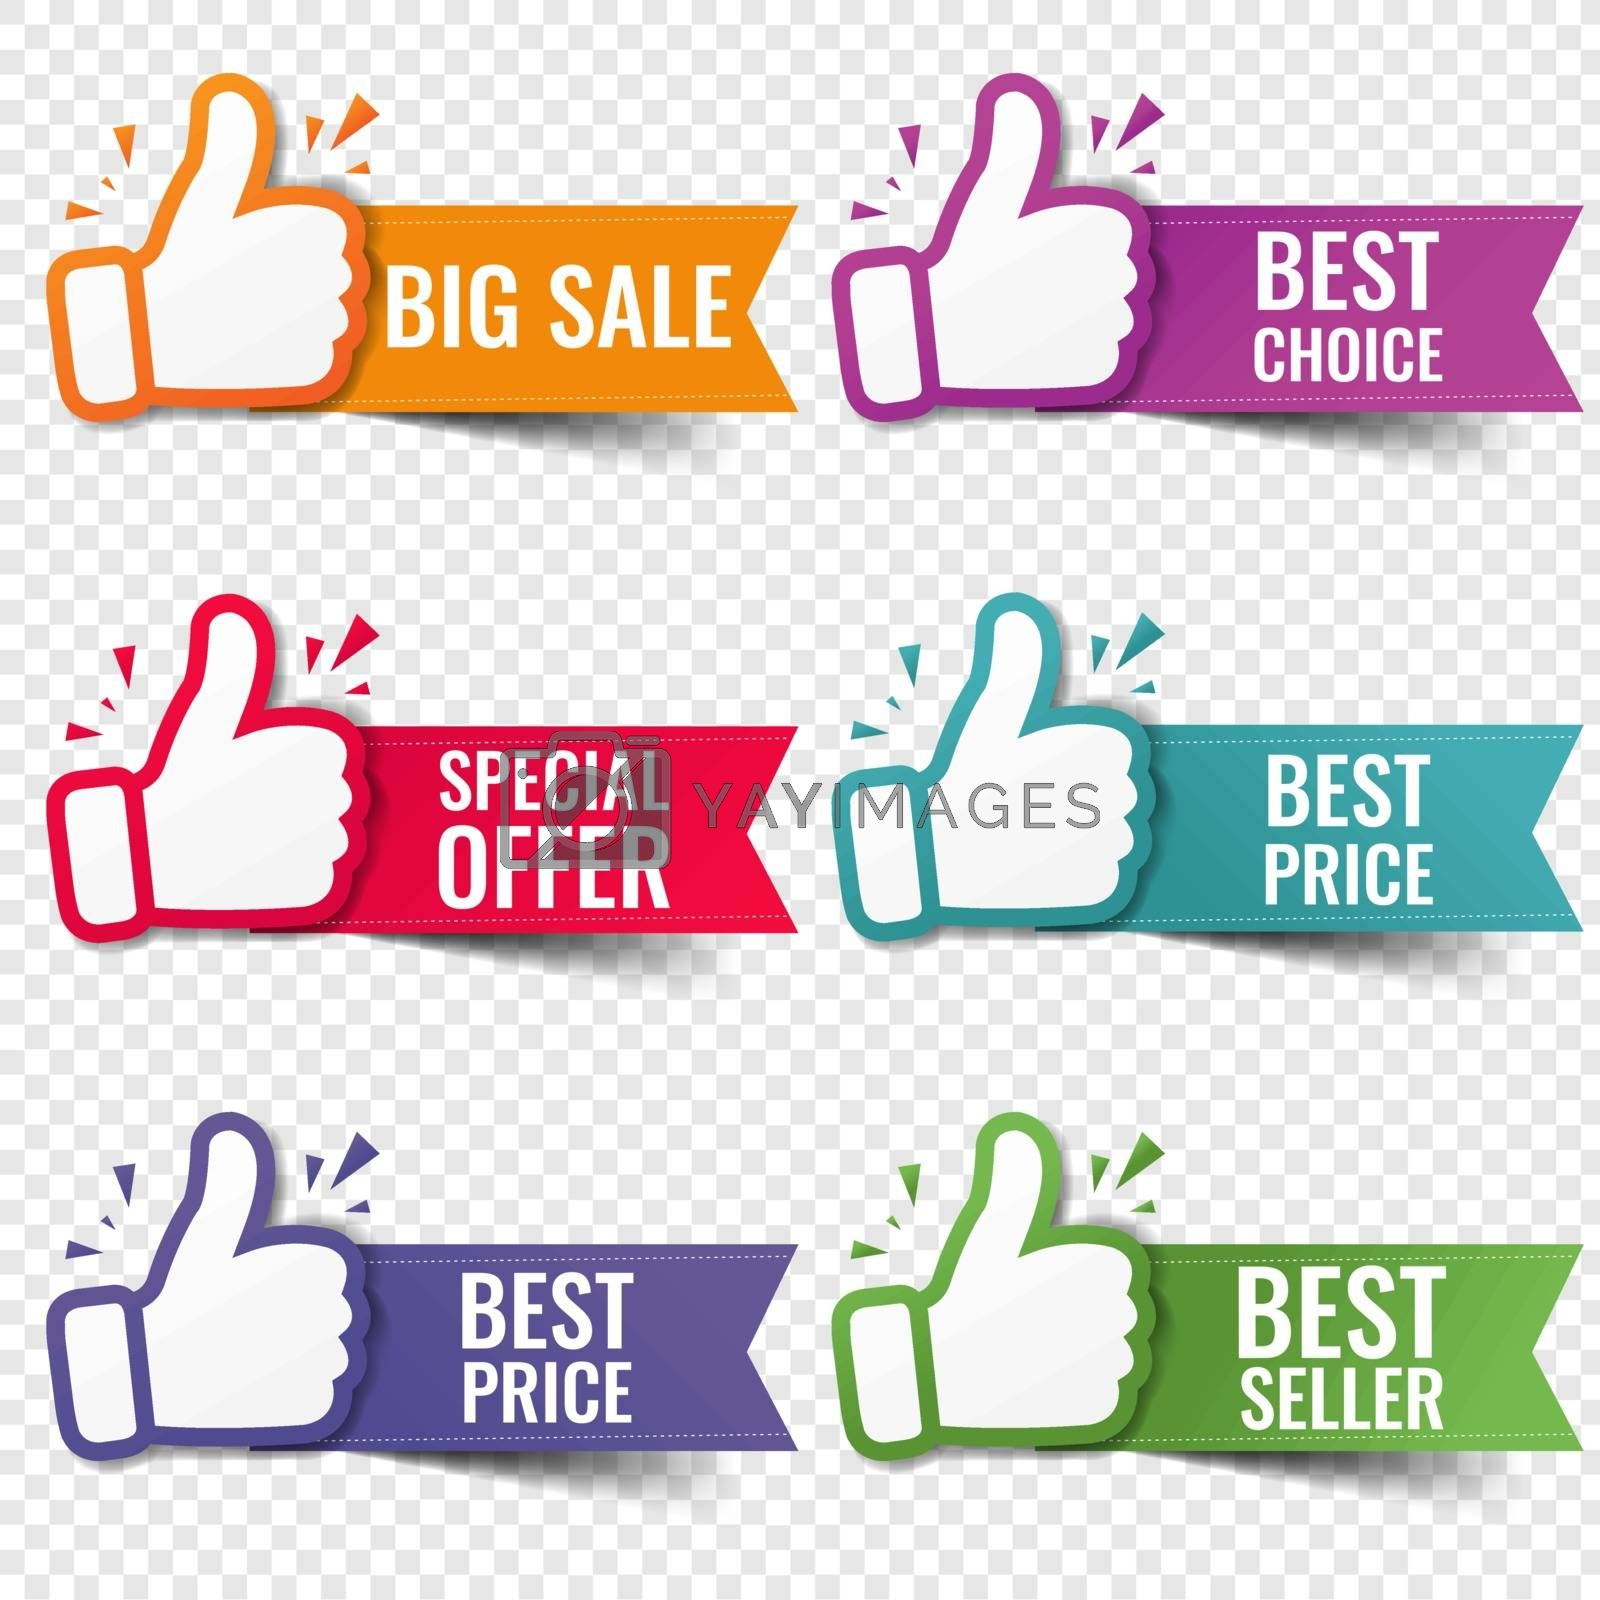 Banner Recommended With Thumbs Up Transparent Background With Gradient Mesh, Vector Illustration